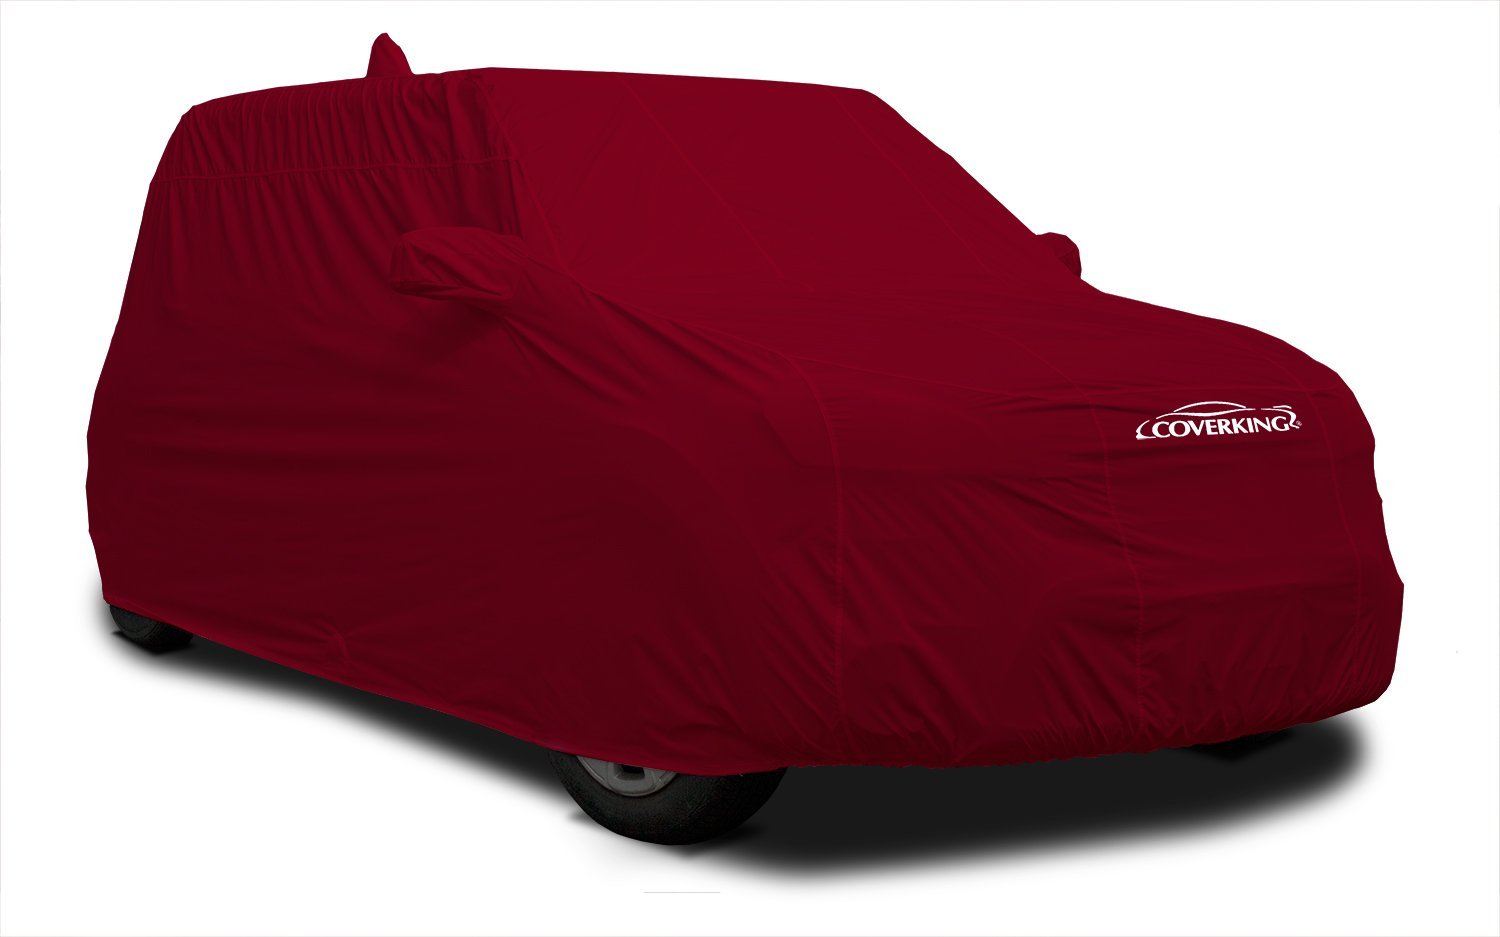 Coverking Custom Fit Vehicle Cover for Select Fiat 500 Models - Stormproof (Red)